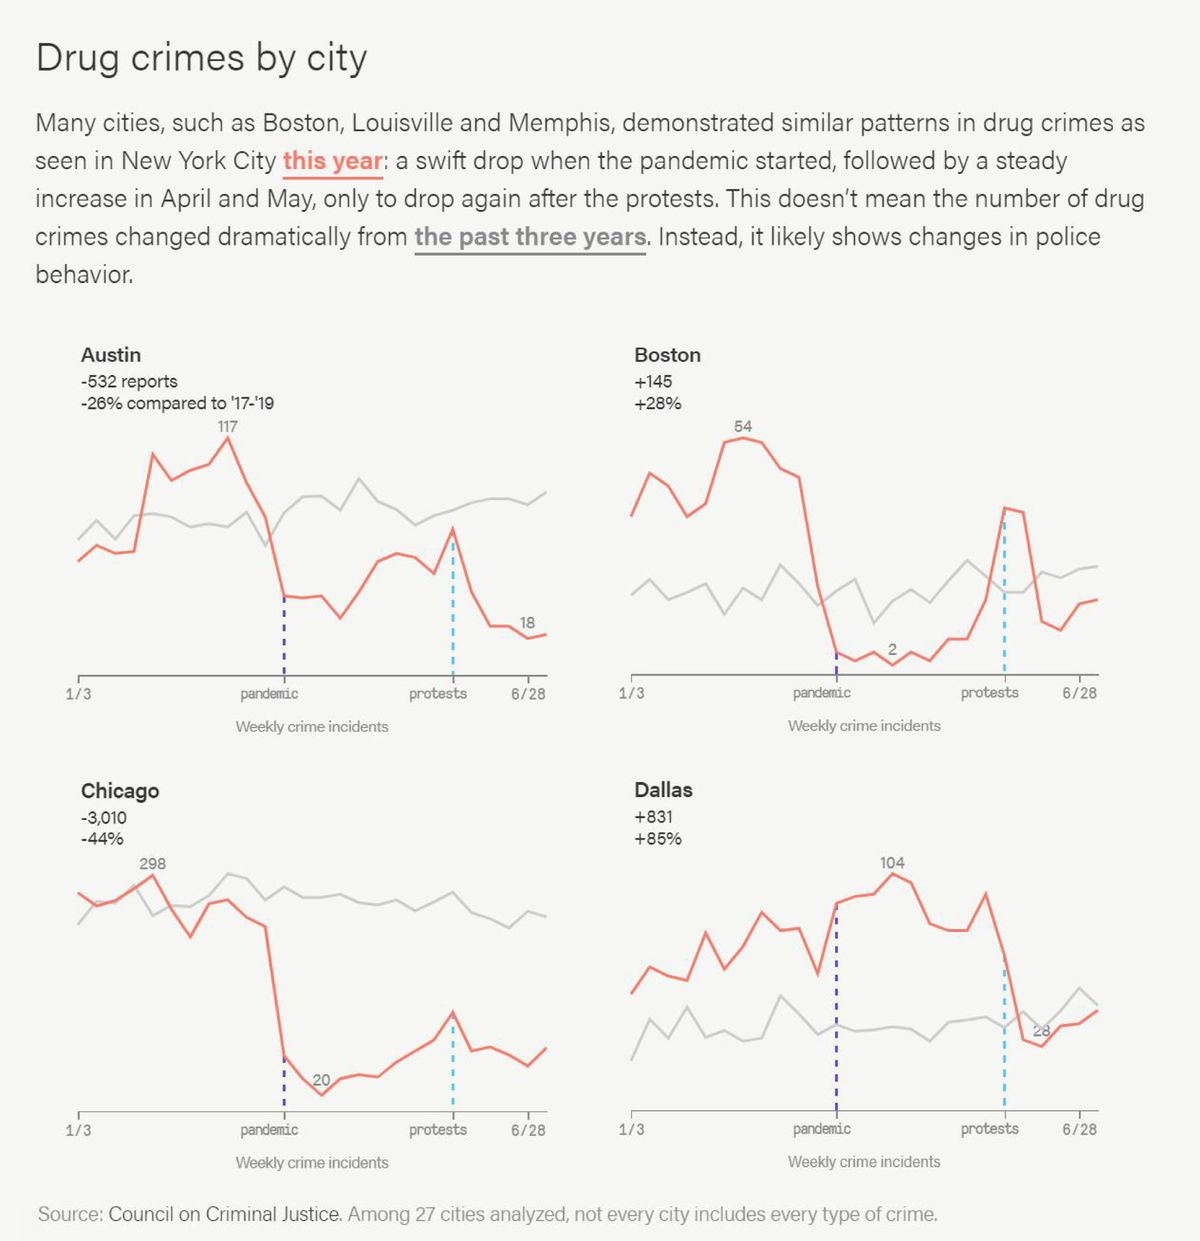 Many cities, such as Boston, Louisville and Memphis, demonstrated similar patterns in drug crimes as seen in New York City: a swift drop when the pandemic started, followed by a steady increase in April and May, only to drop again after the protests.